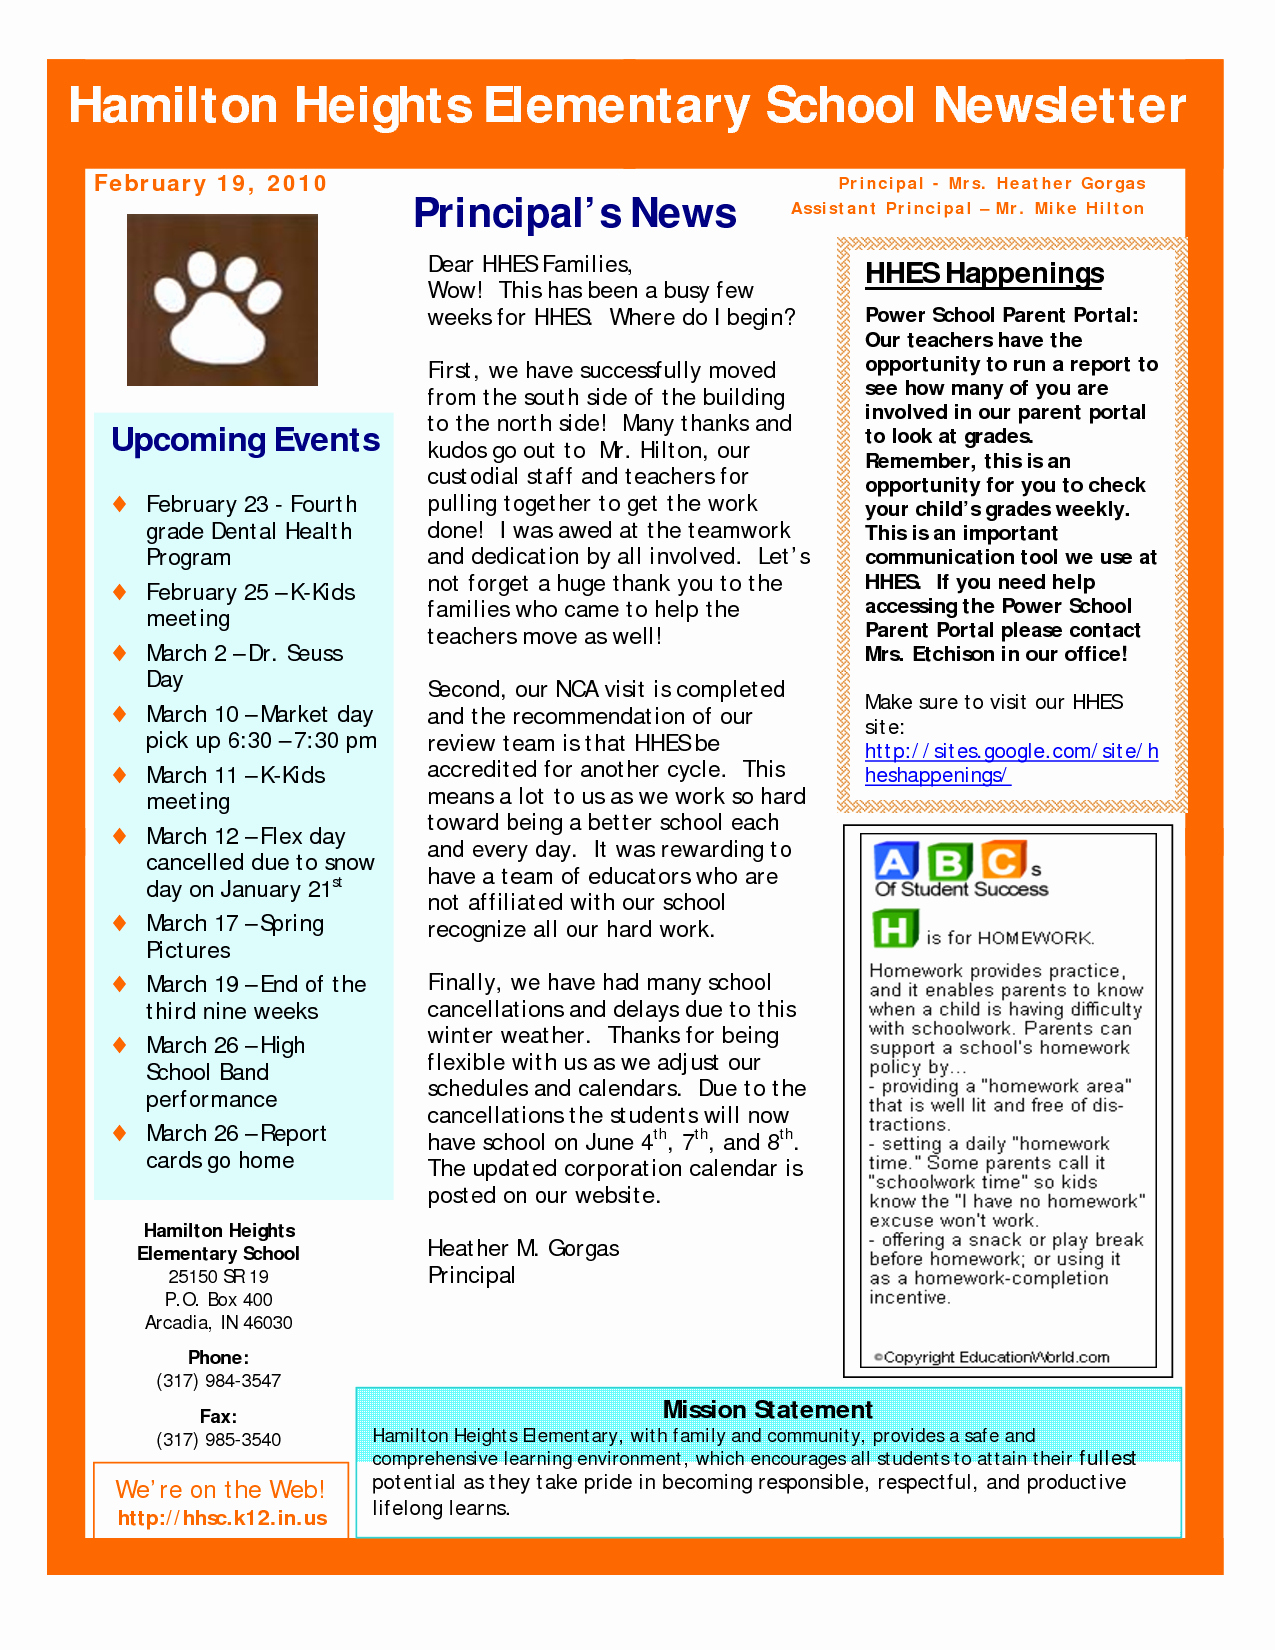 Elementary School Newsletter Template Inspirational Best S Of Sample School Newsletter Templates Free